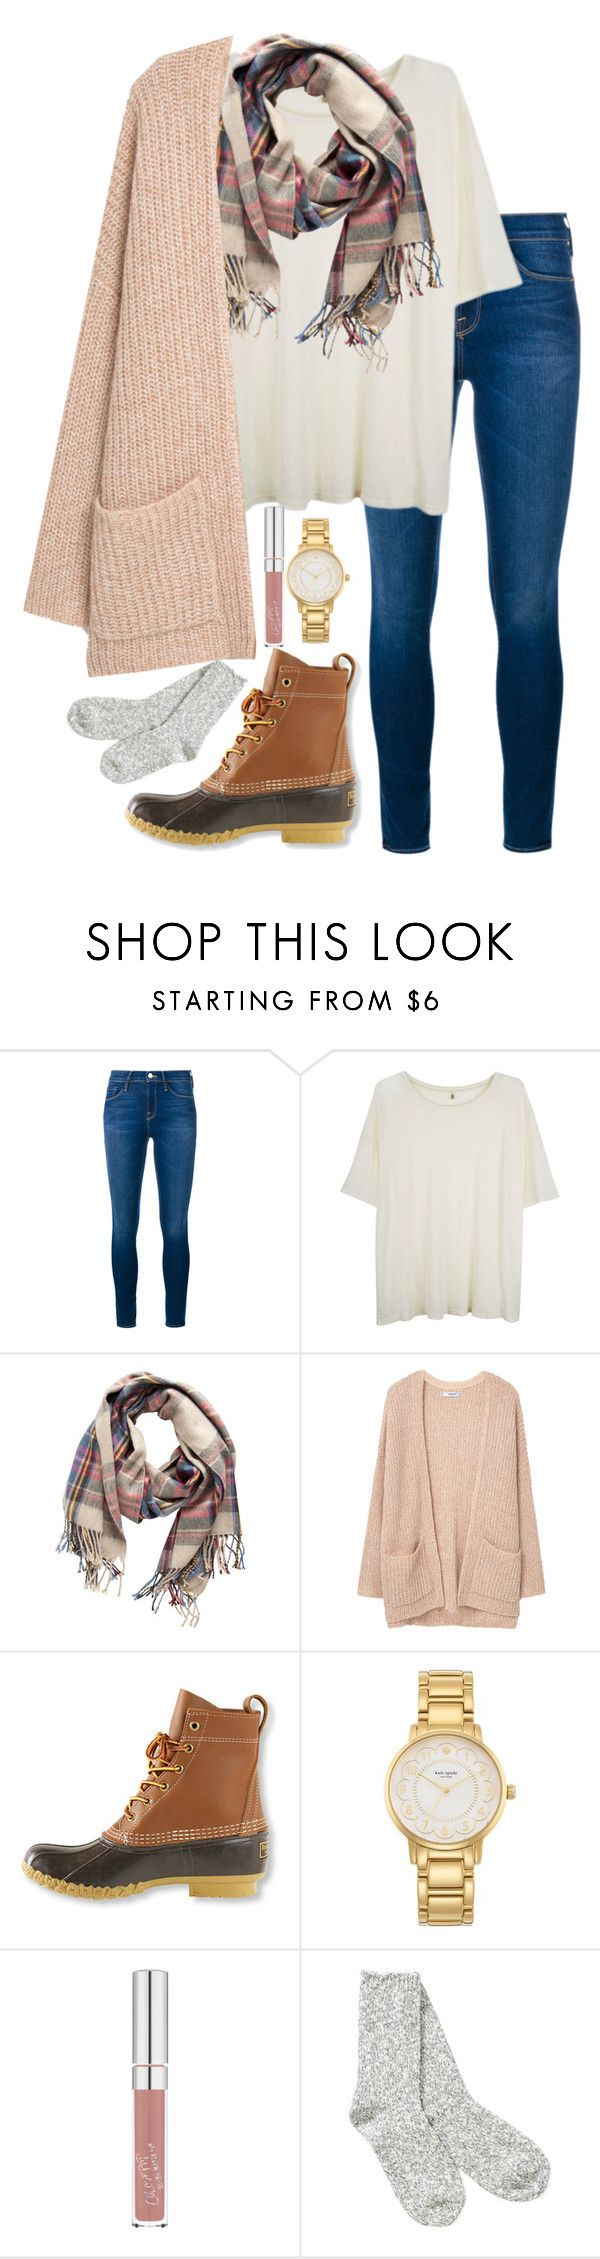 """November and 80 degrees outside"" by valerienwashington ❤ liked on Polyvore featuring Frame Denim, R13, Pieces, MANGO, L.L.Bean, Kate Spade and TNA More"